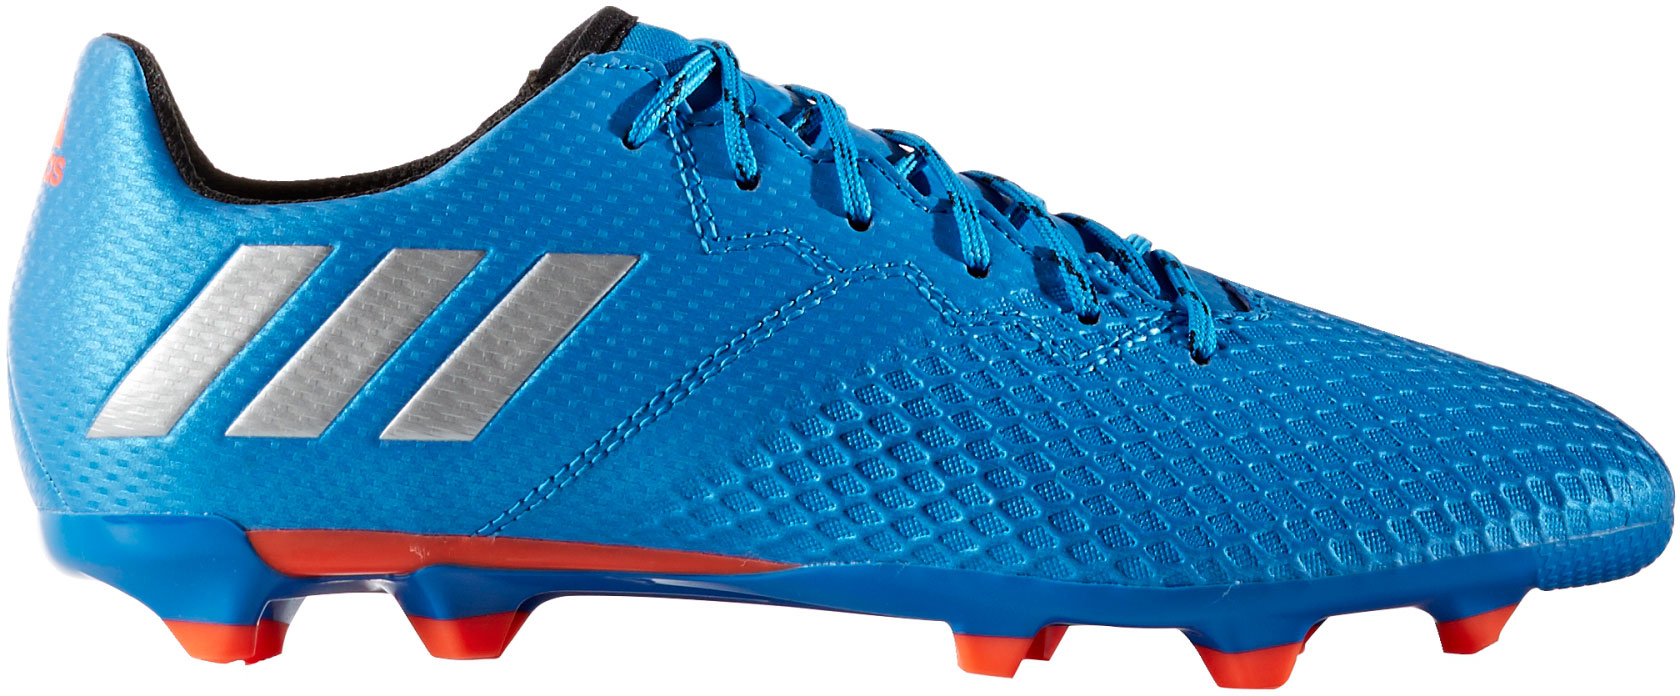 brand new b619e b3d22 Boys adidas Messi Junior 16.3 FG Blue Silver Moulded Studs Soccer Football  Boots